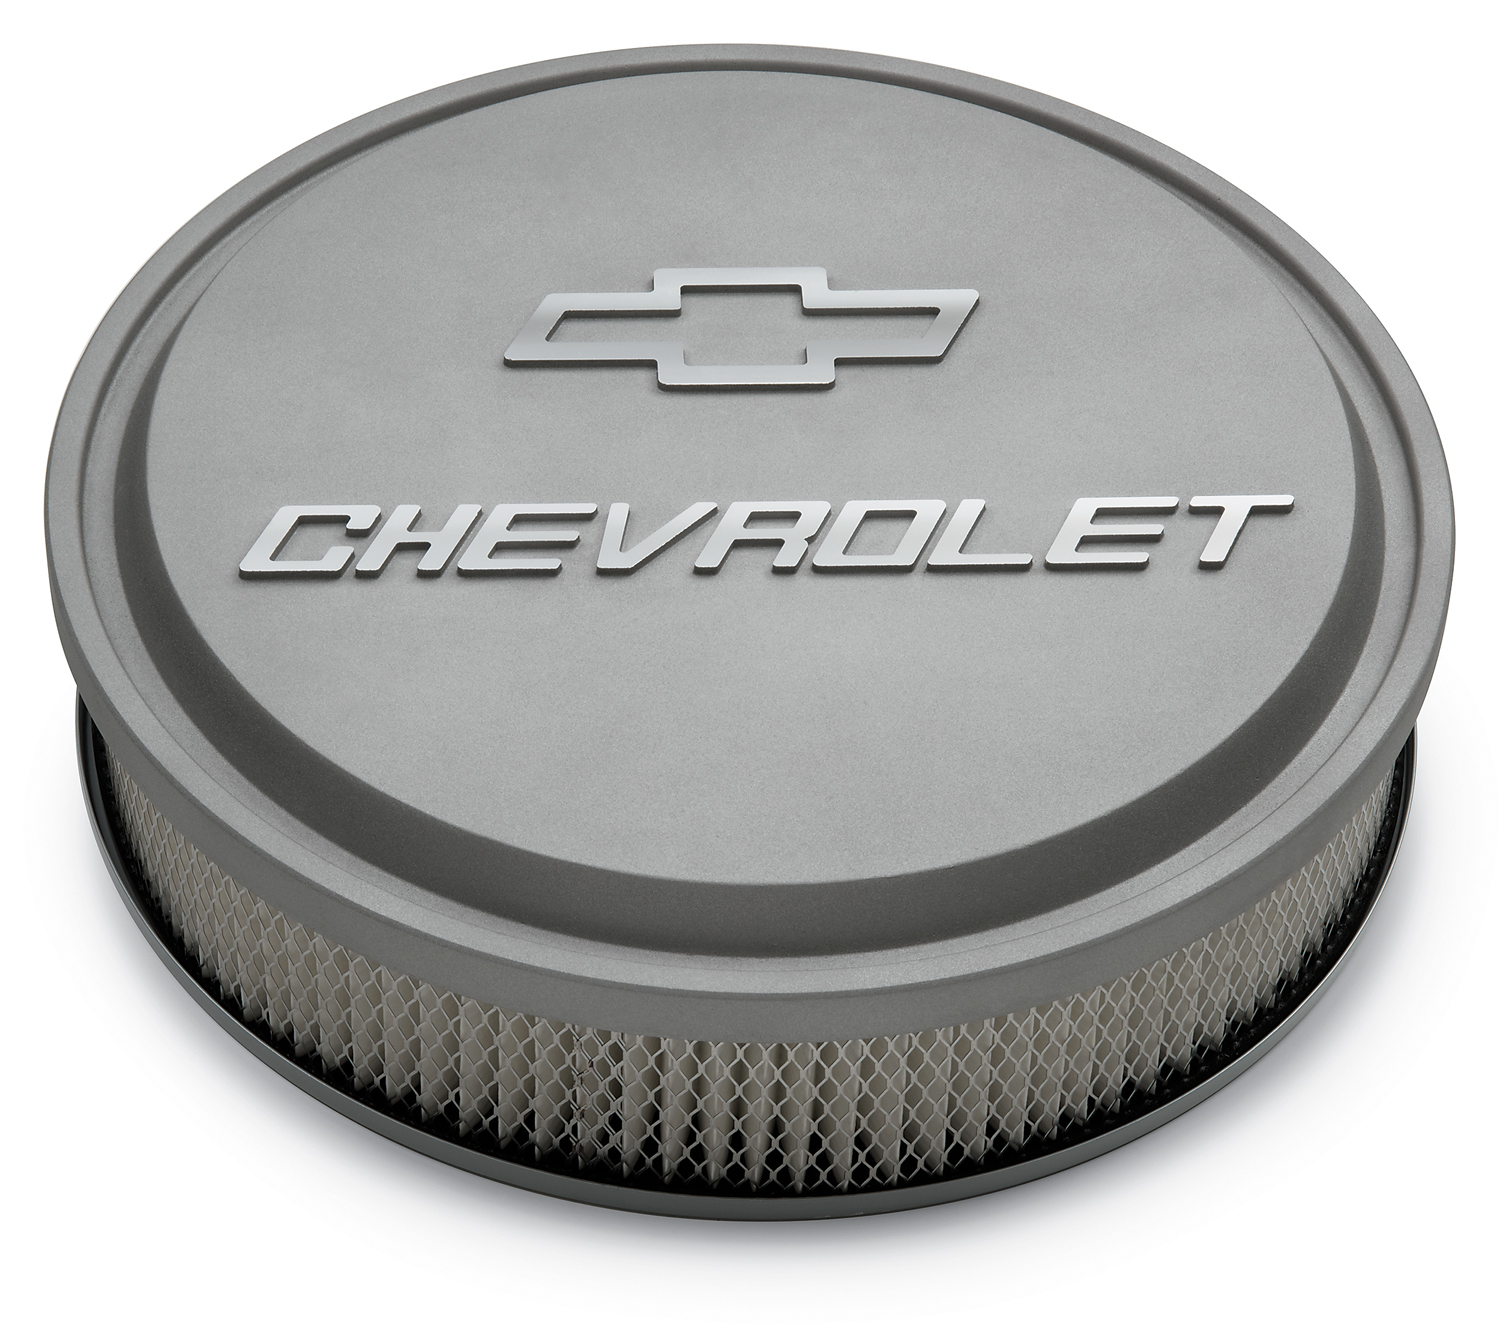 Proform 14 Inch Air Cleaner Kit Alunimum Gray Crinkle Raised Chevy and Bowtie Emblems Chevrolet Performance Parts